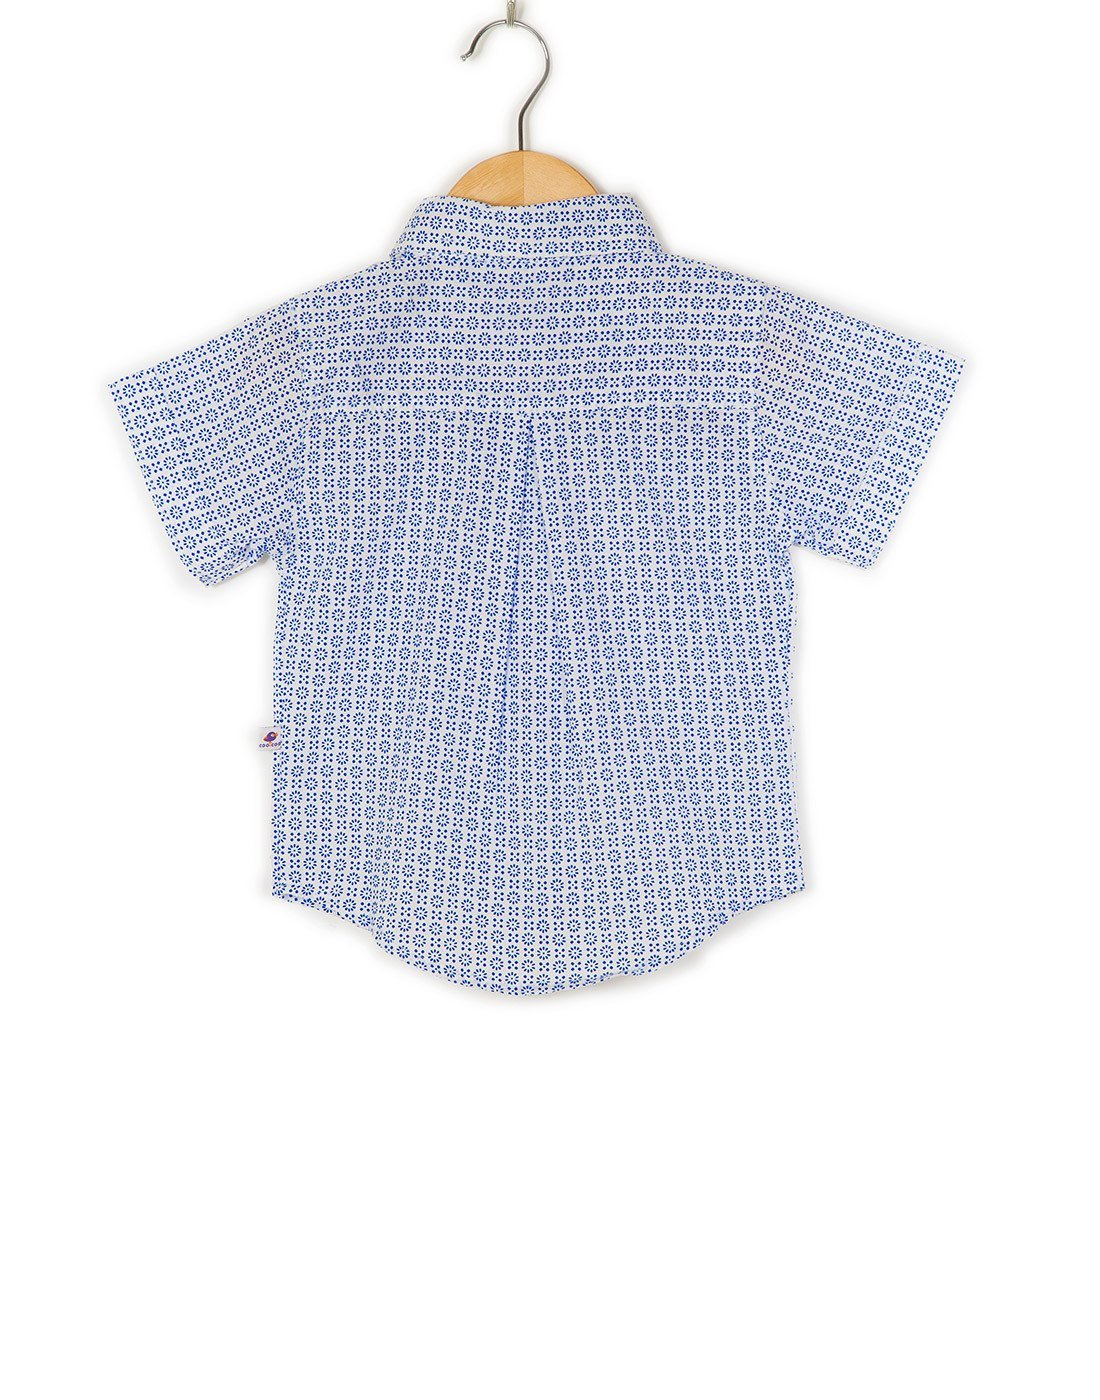 COO COO 'The Parth' Flower Printed Mal Half Sleeve Shirt - White & Blue